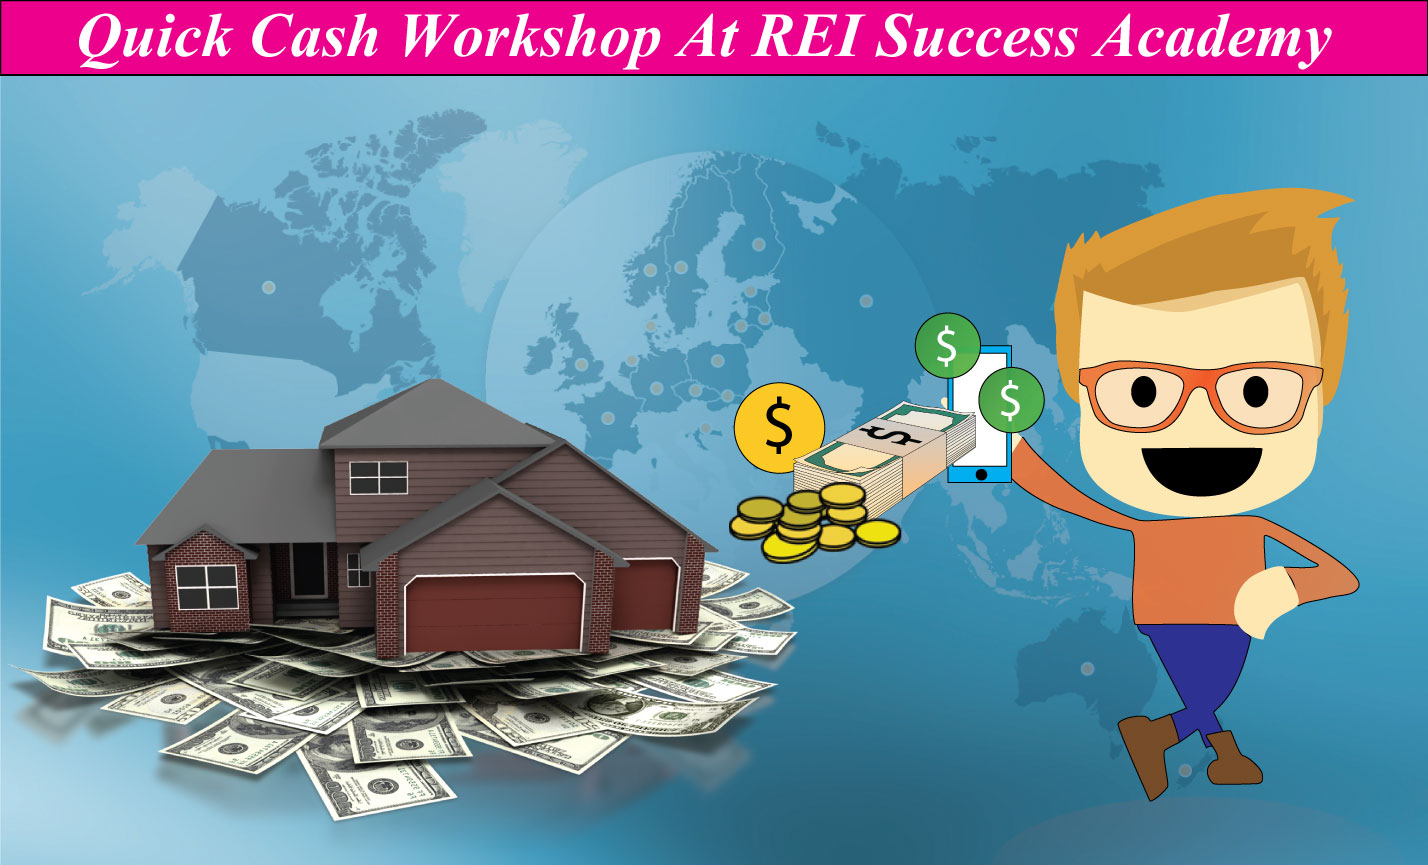 zack-childress-Quick-Cash-Workshop